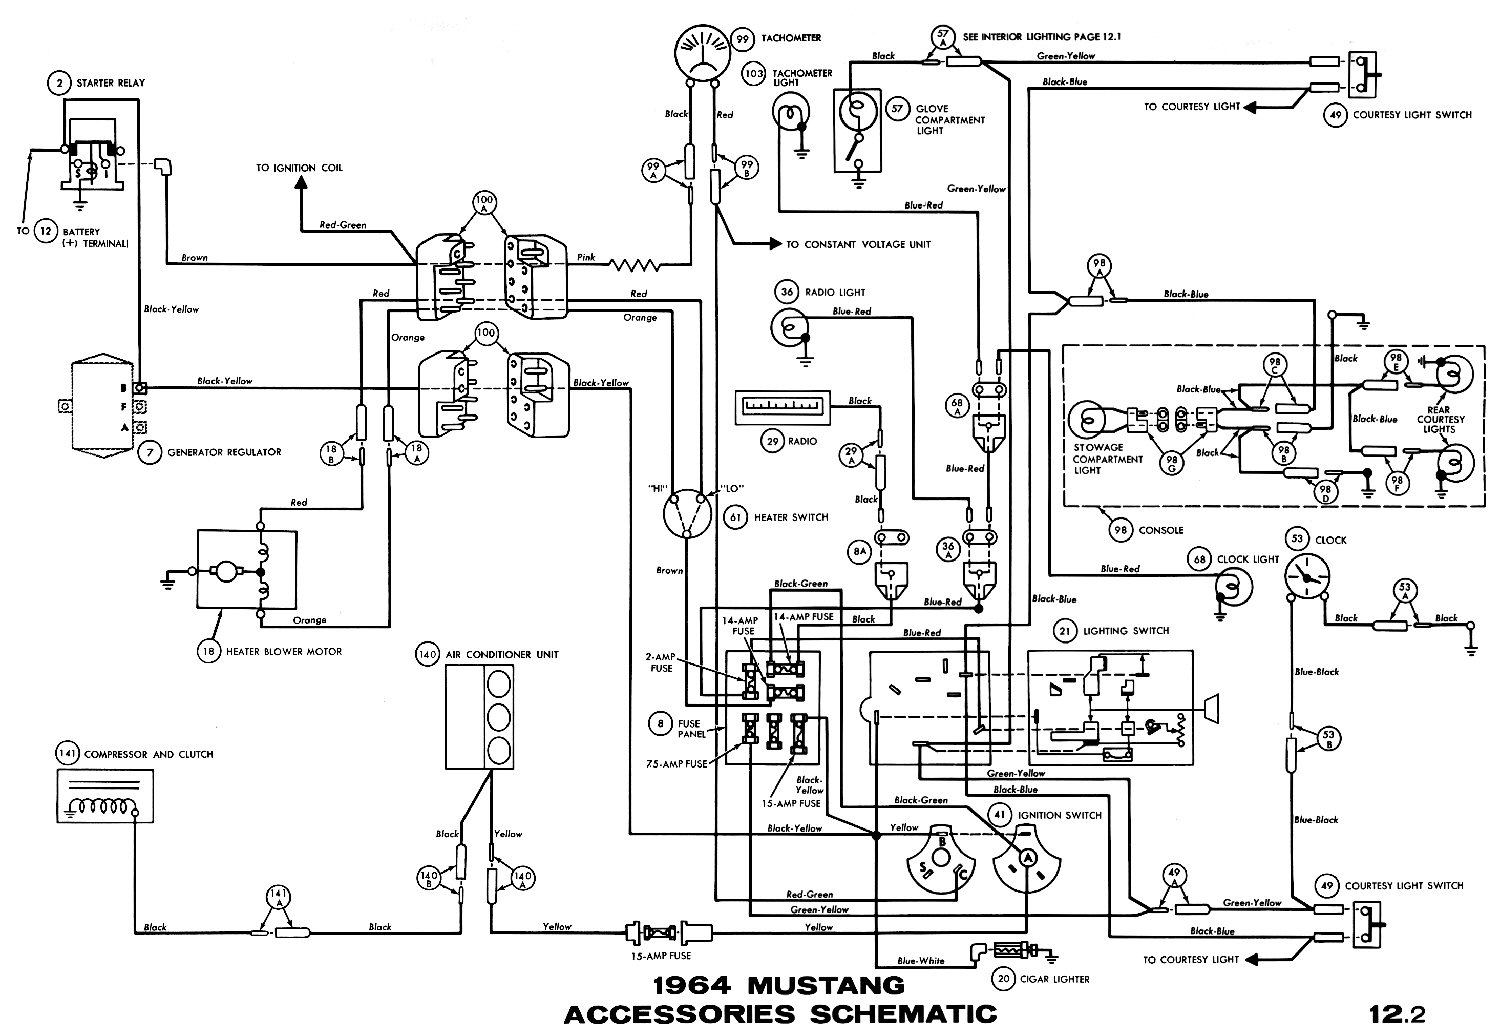 1964m 1970 mustang wiring diagram pdf 1967 mustang wiring diagram pdf 2000 C5 Corvette Wiring Diagram at gsmx.co